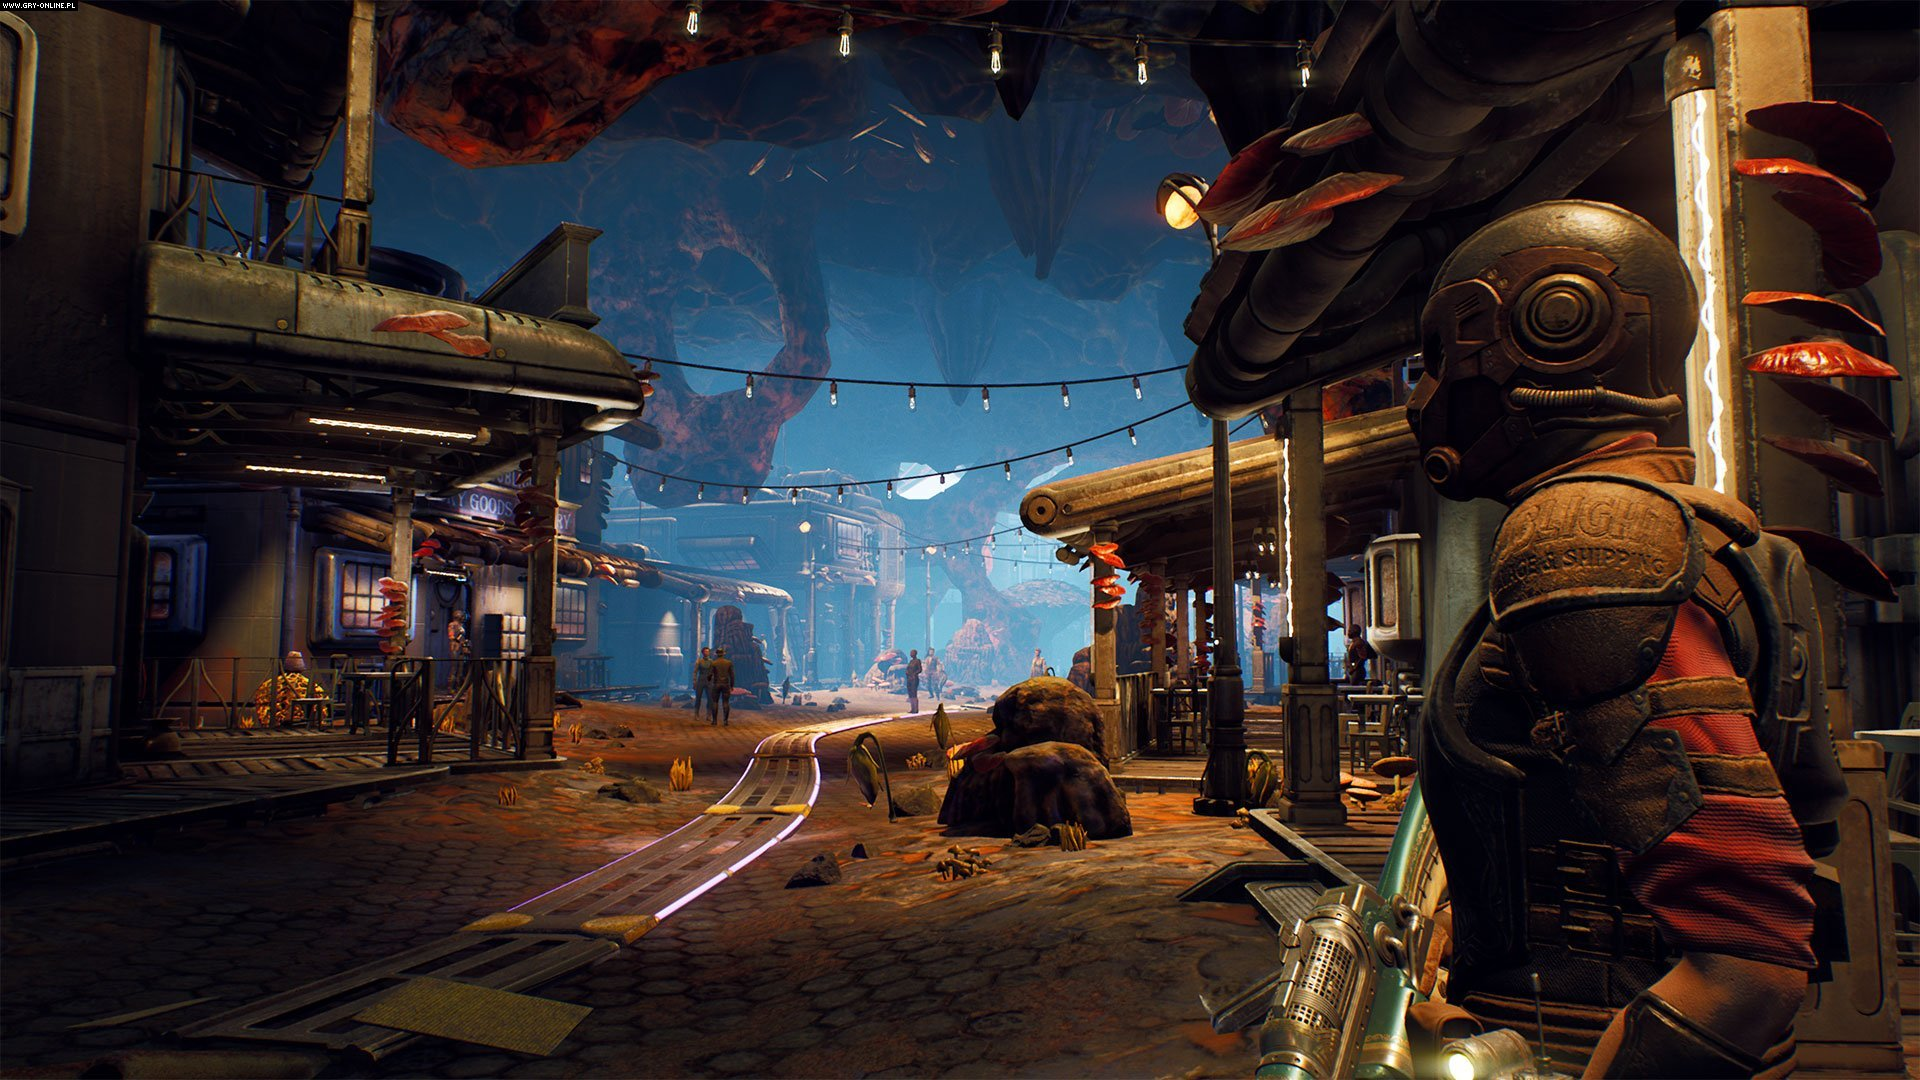 The Outer Worlds PC, PS4, XONE Games Image 11/21, Obsidian Entertainment, Private Division